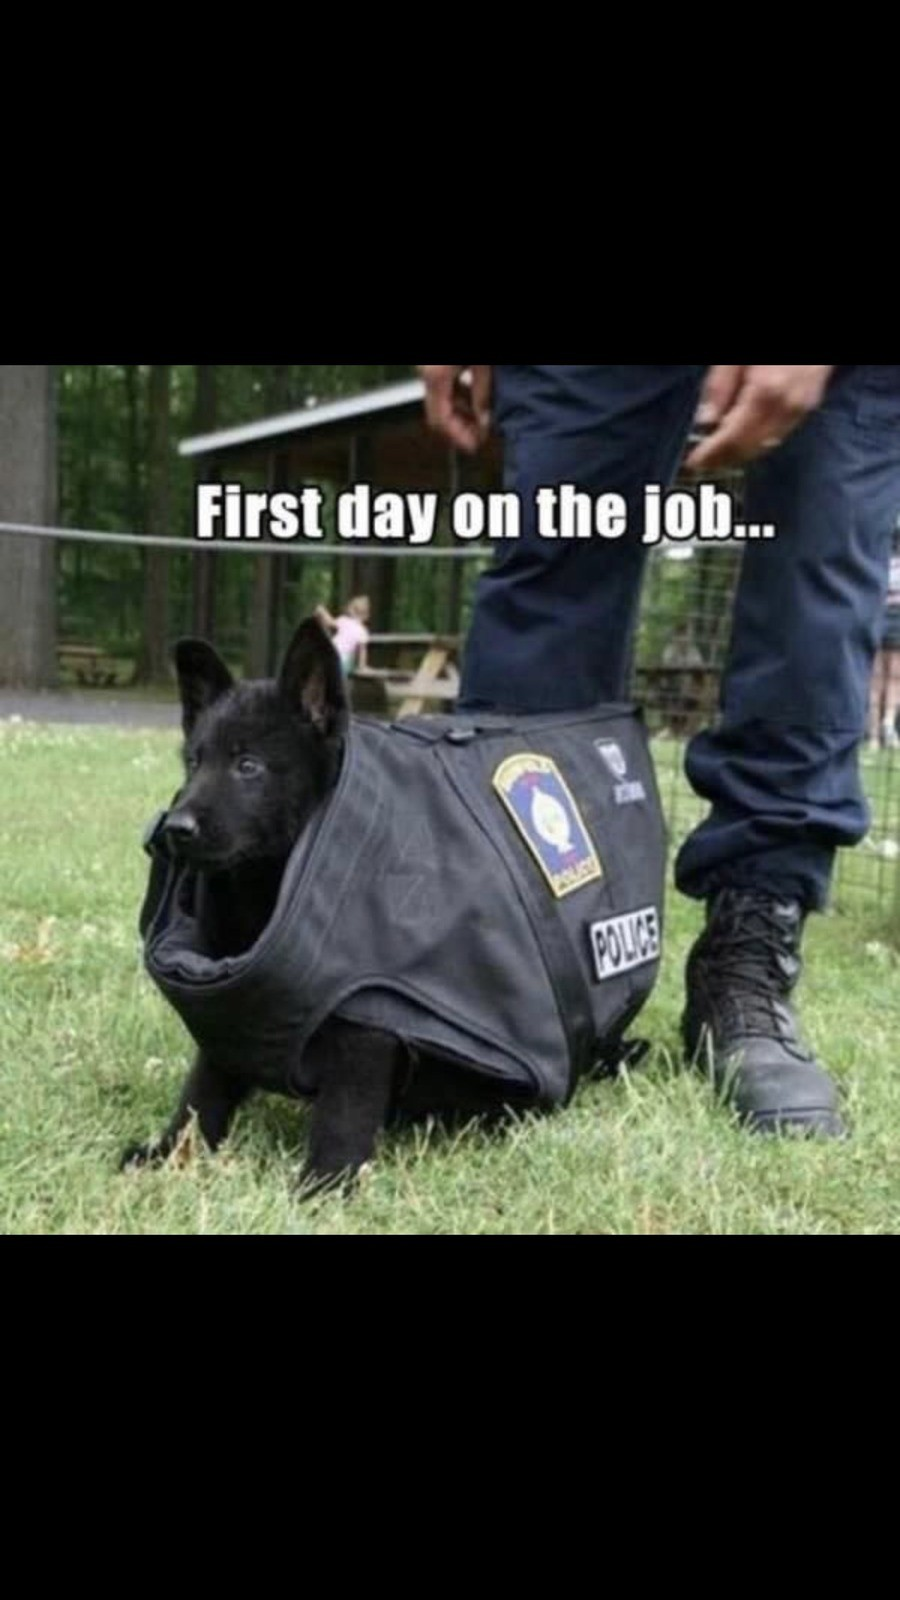 Be safe little pupper. Streets are ruff. .. last day on the job